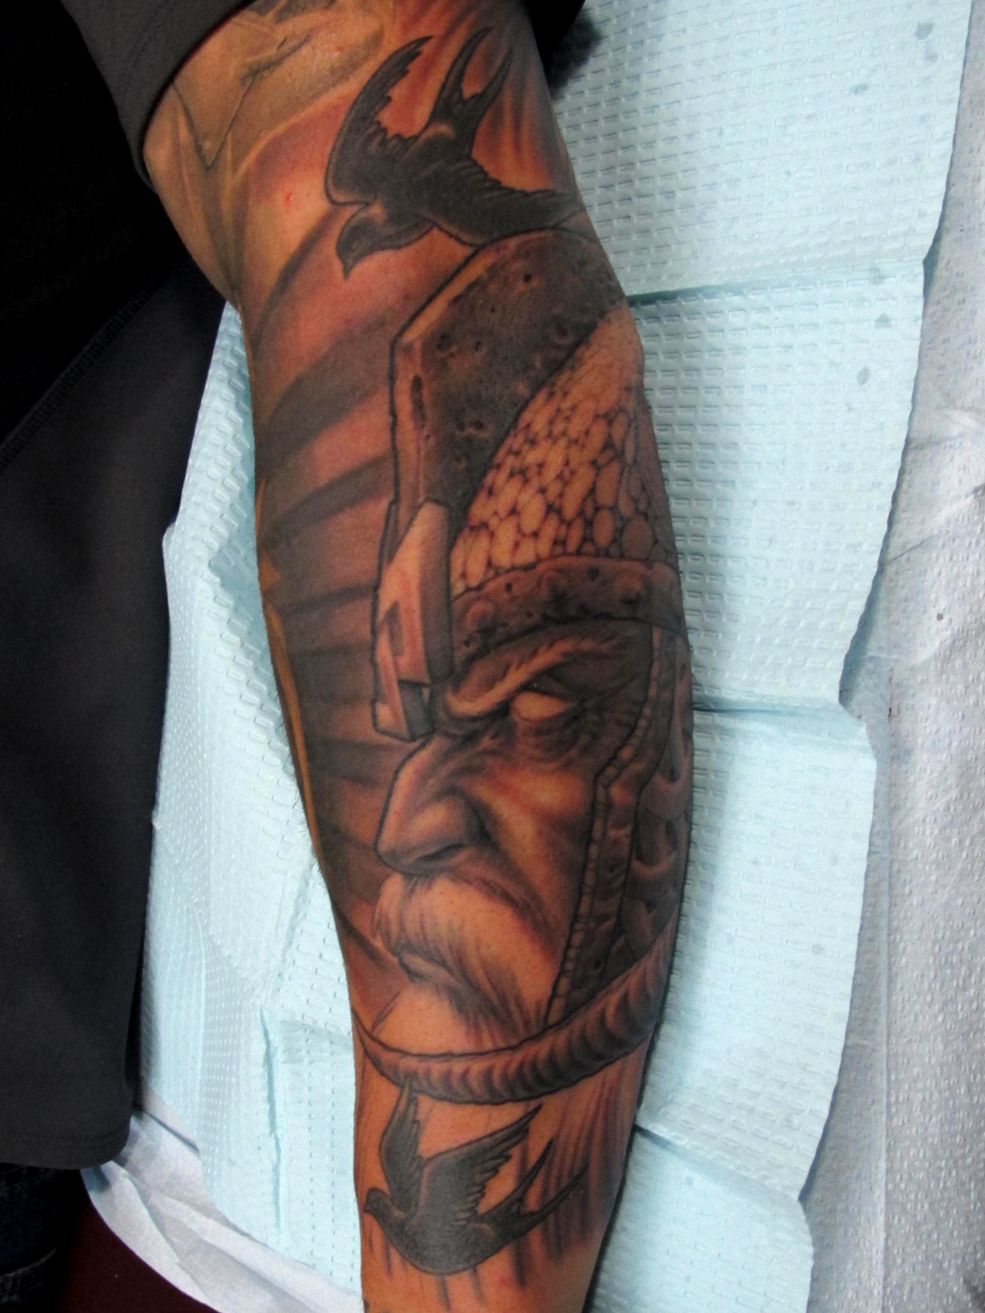 Odin Tattoos: Chris Black